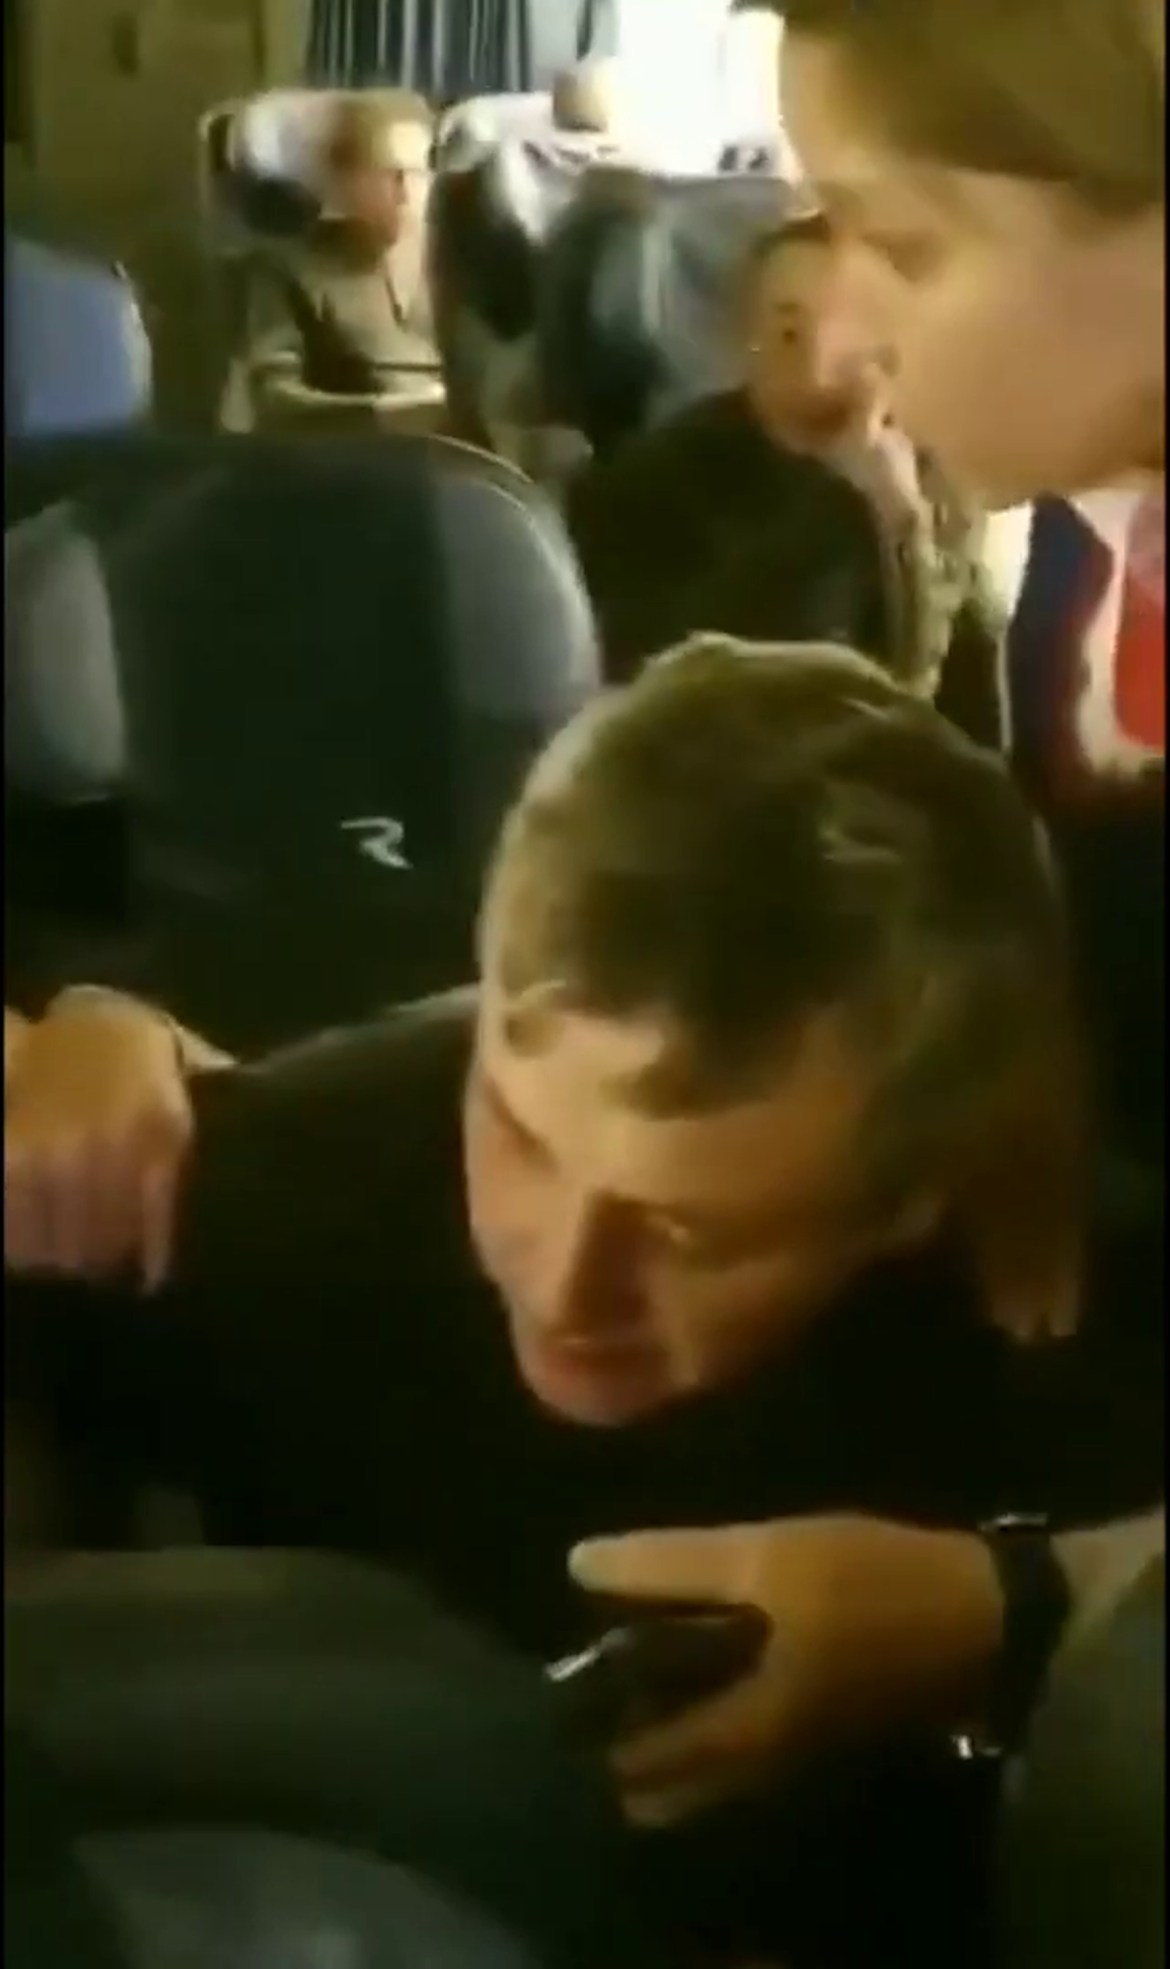 The excruciating moment the stewardess intervenes after complaints from passengers